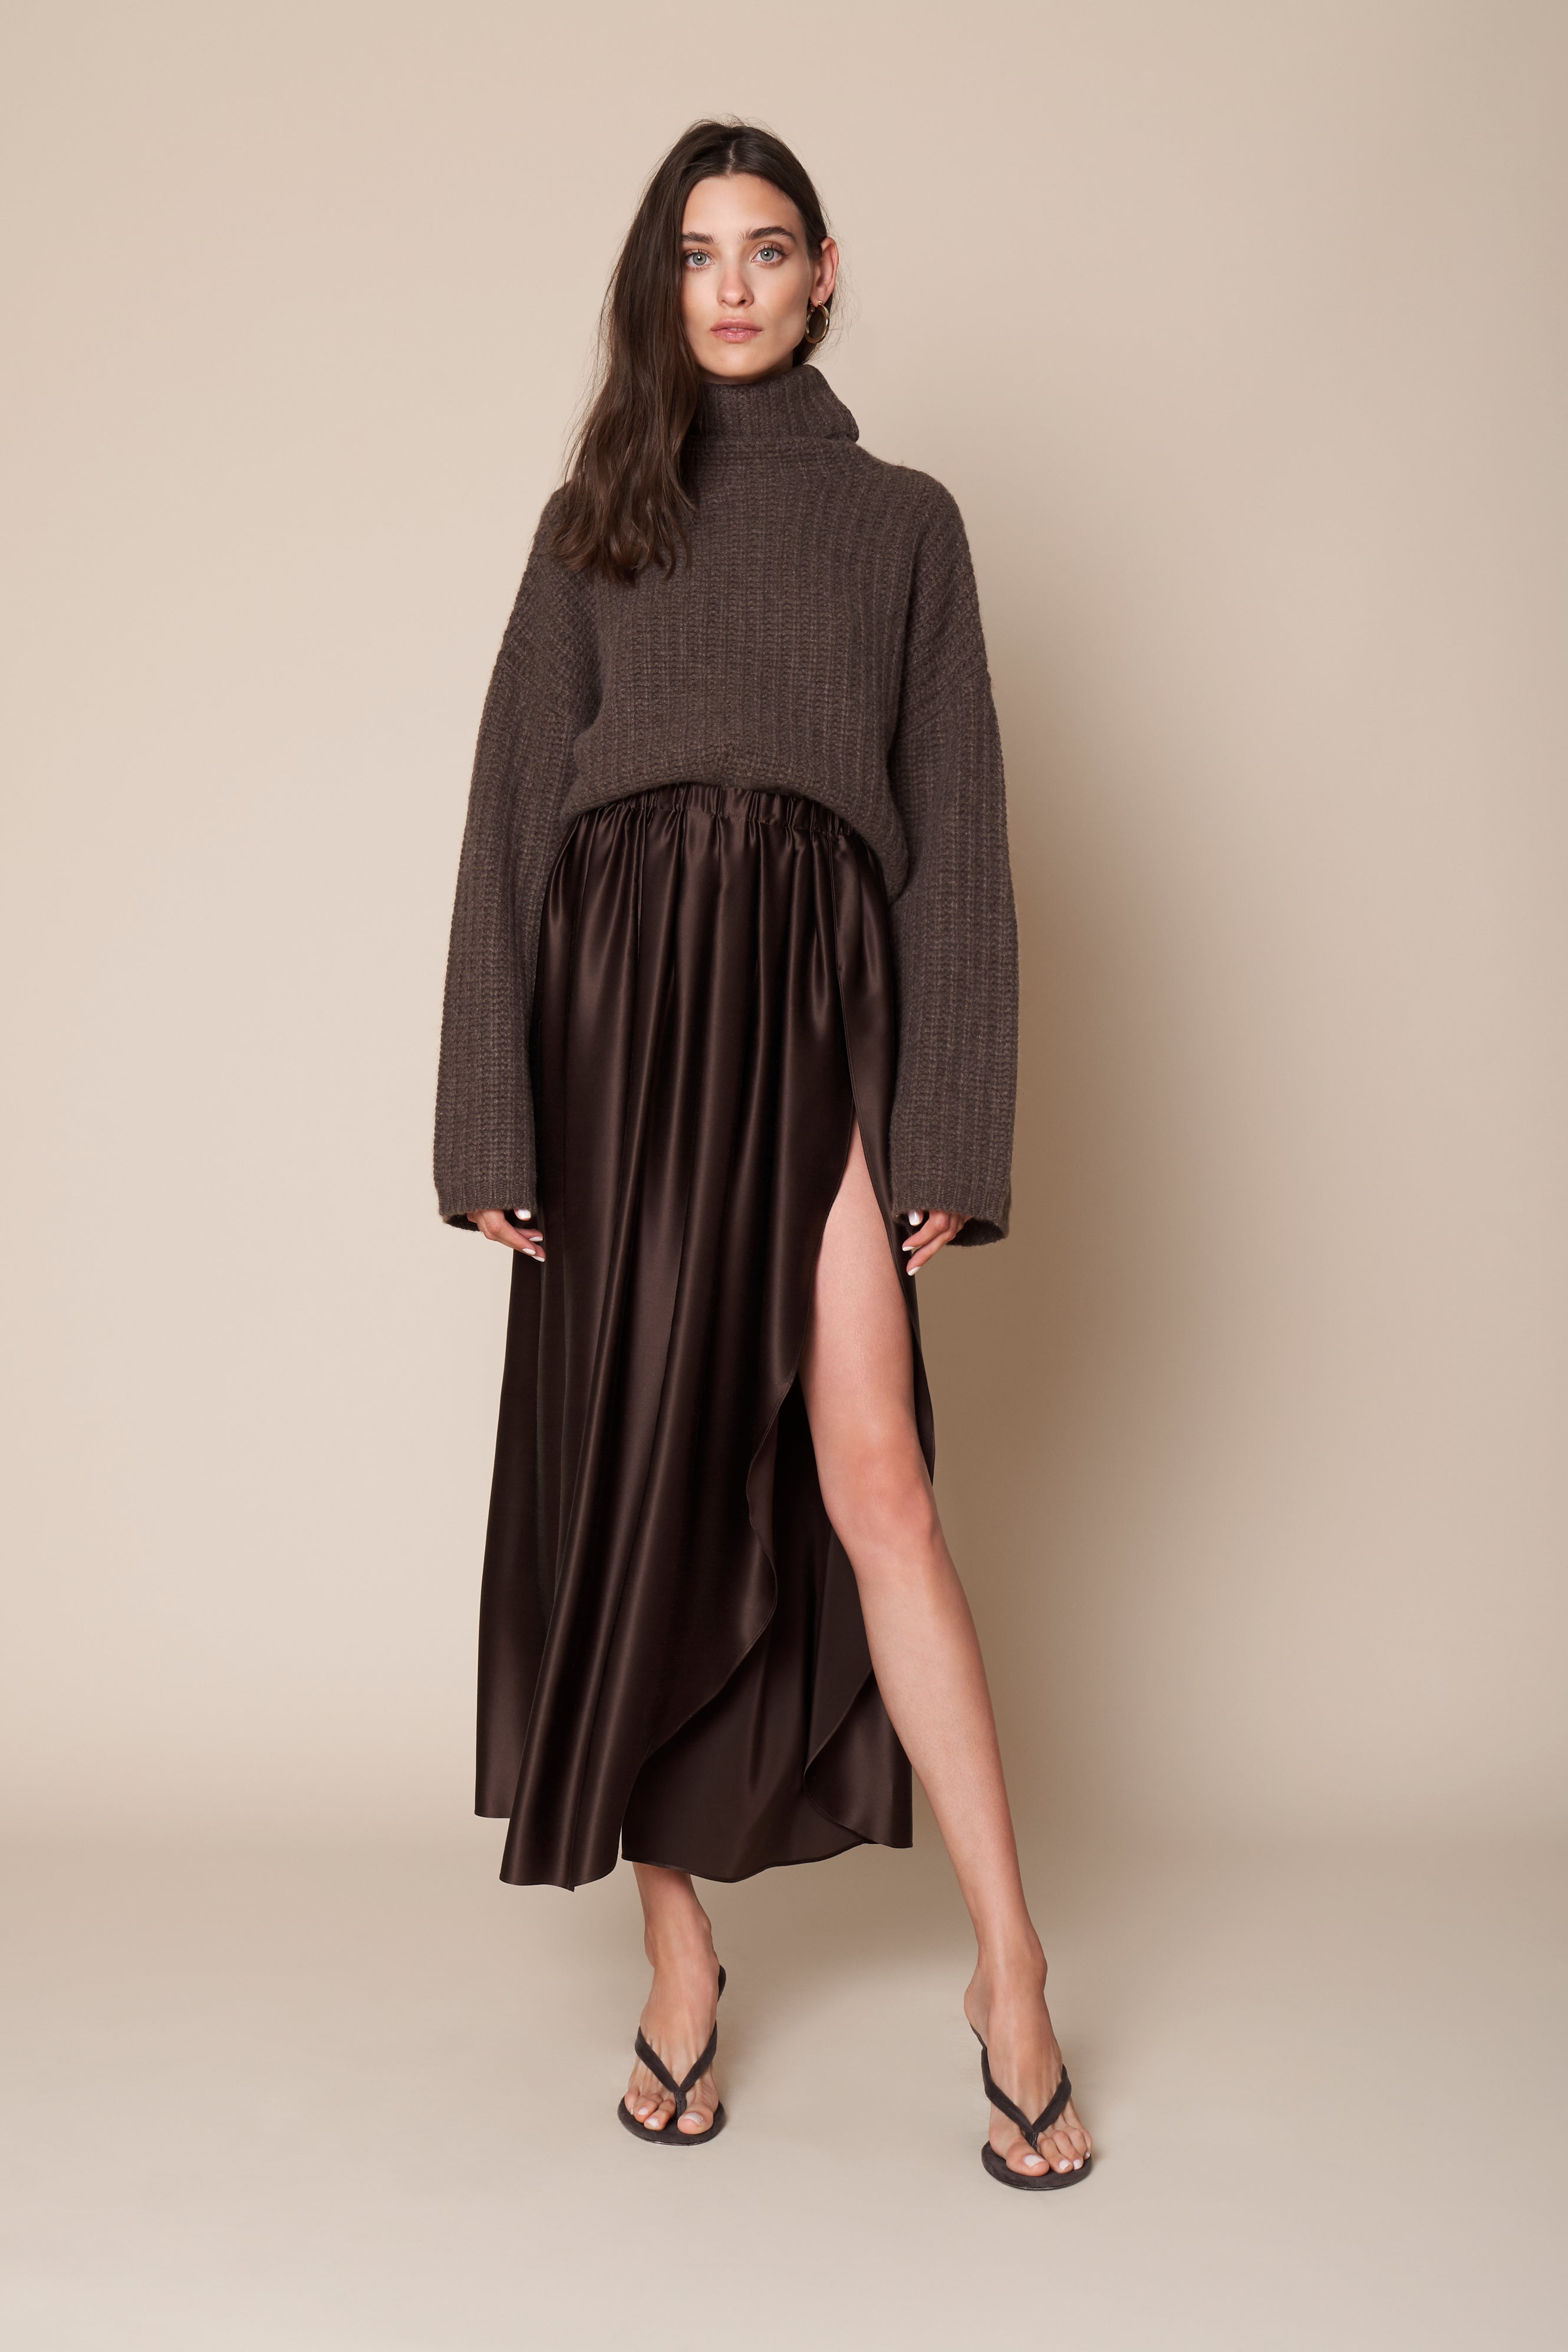 MASHA SILK SKIRT WITH SLIT | CHOCOLATE